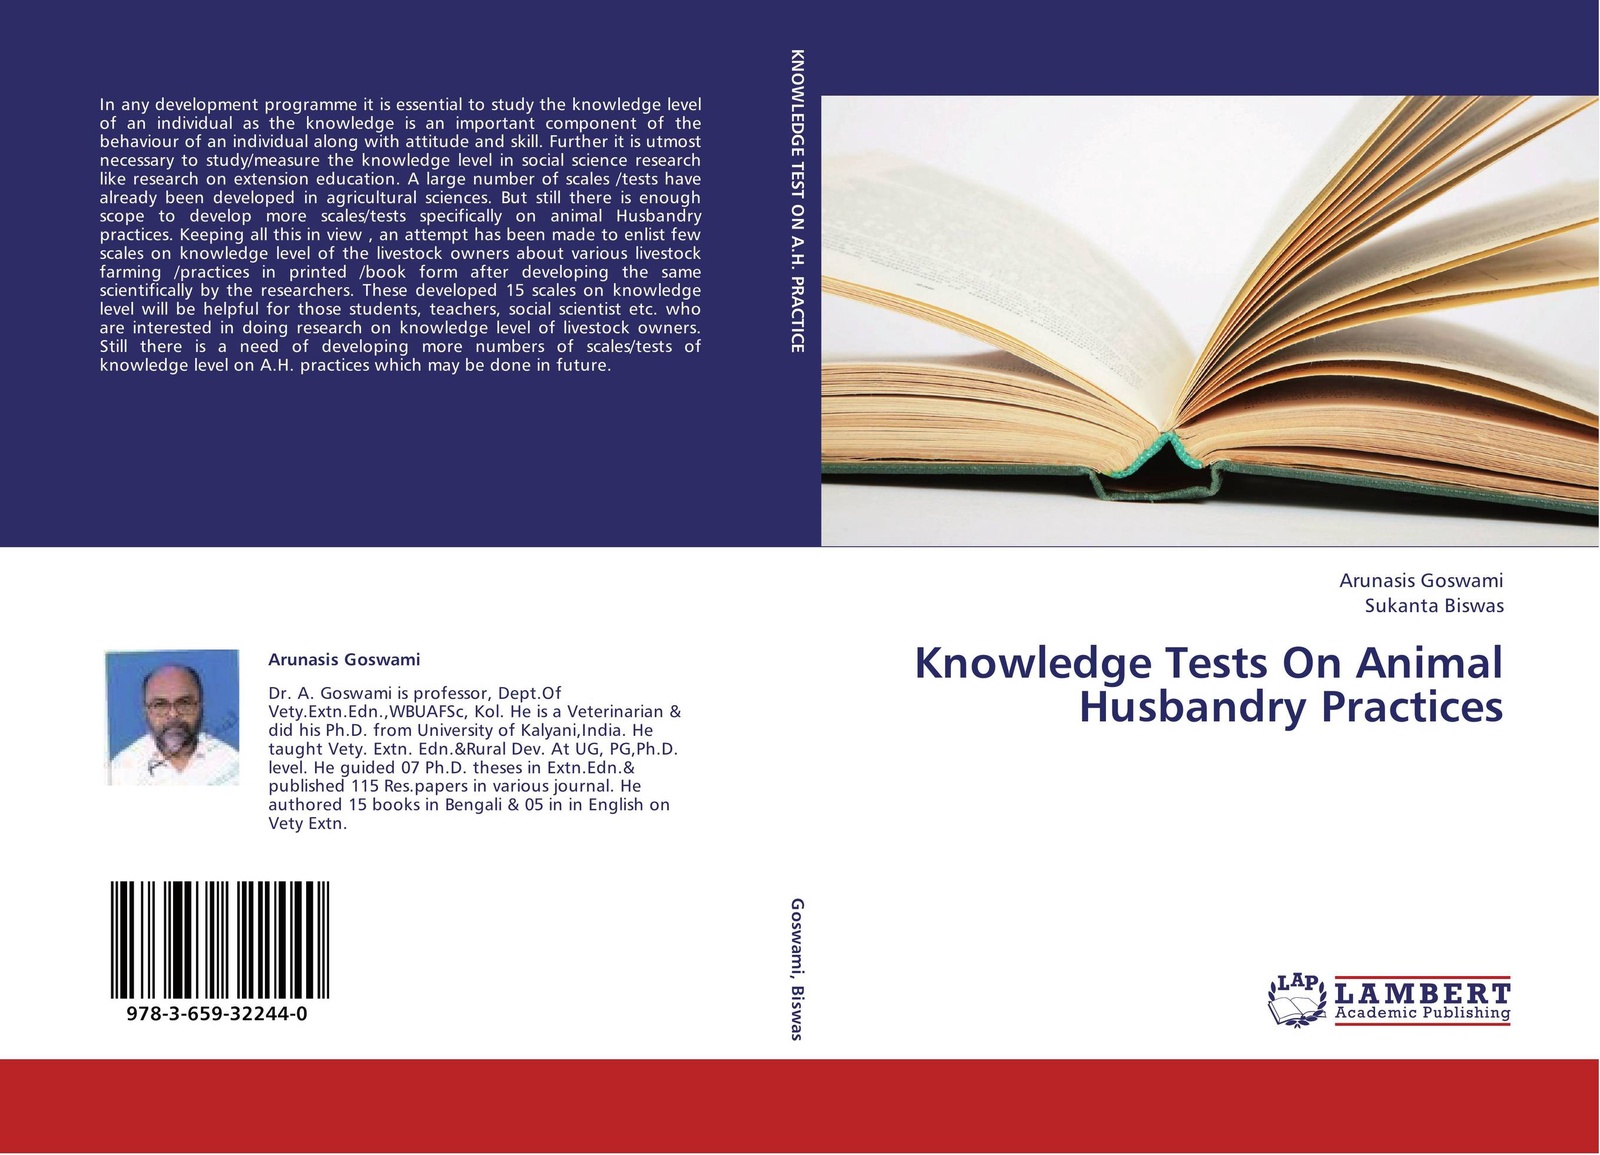 Knowledge Tests On Animal Husbandry Practices